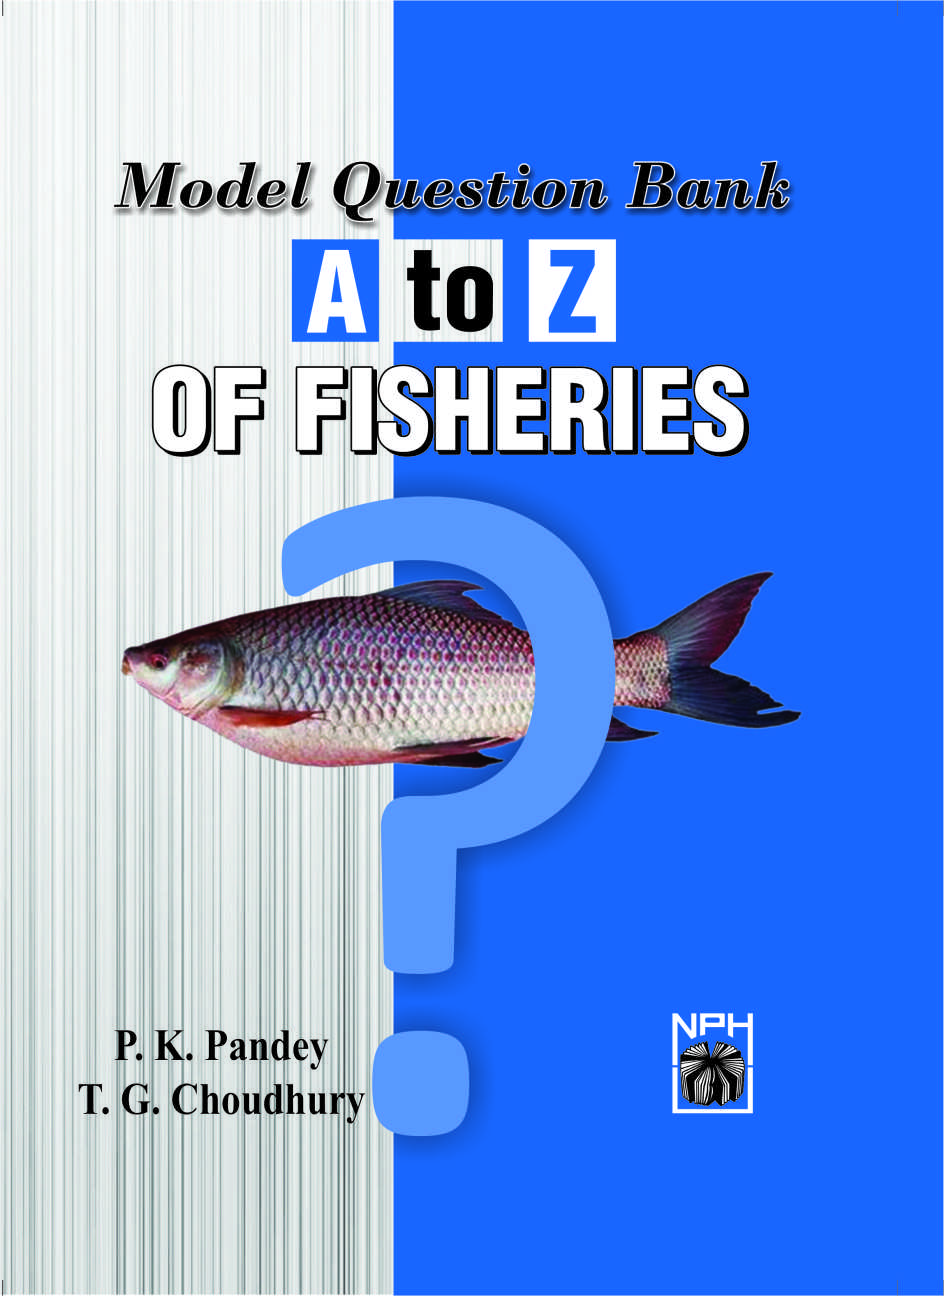 Model Question Bank A to Z of Fisheries (PB)